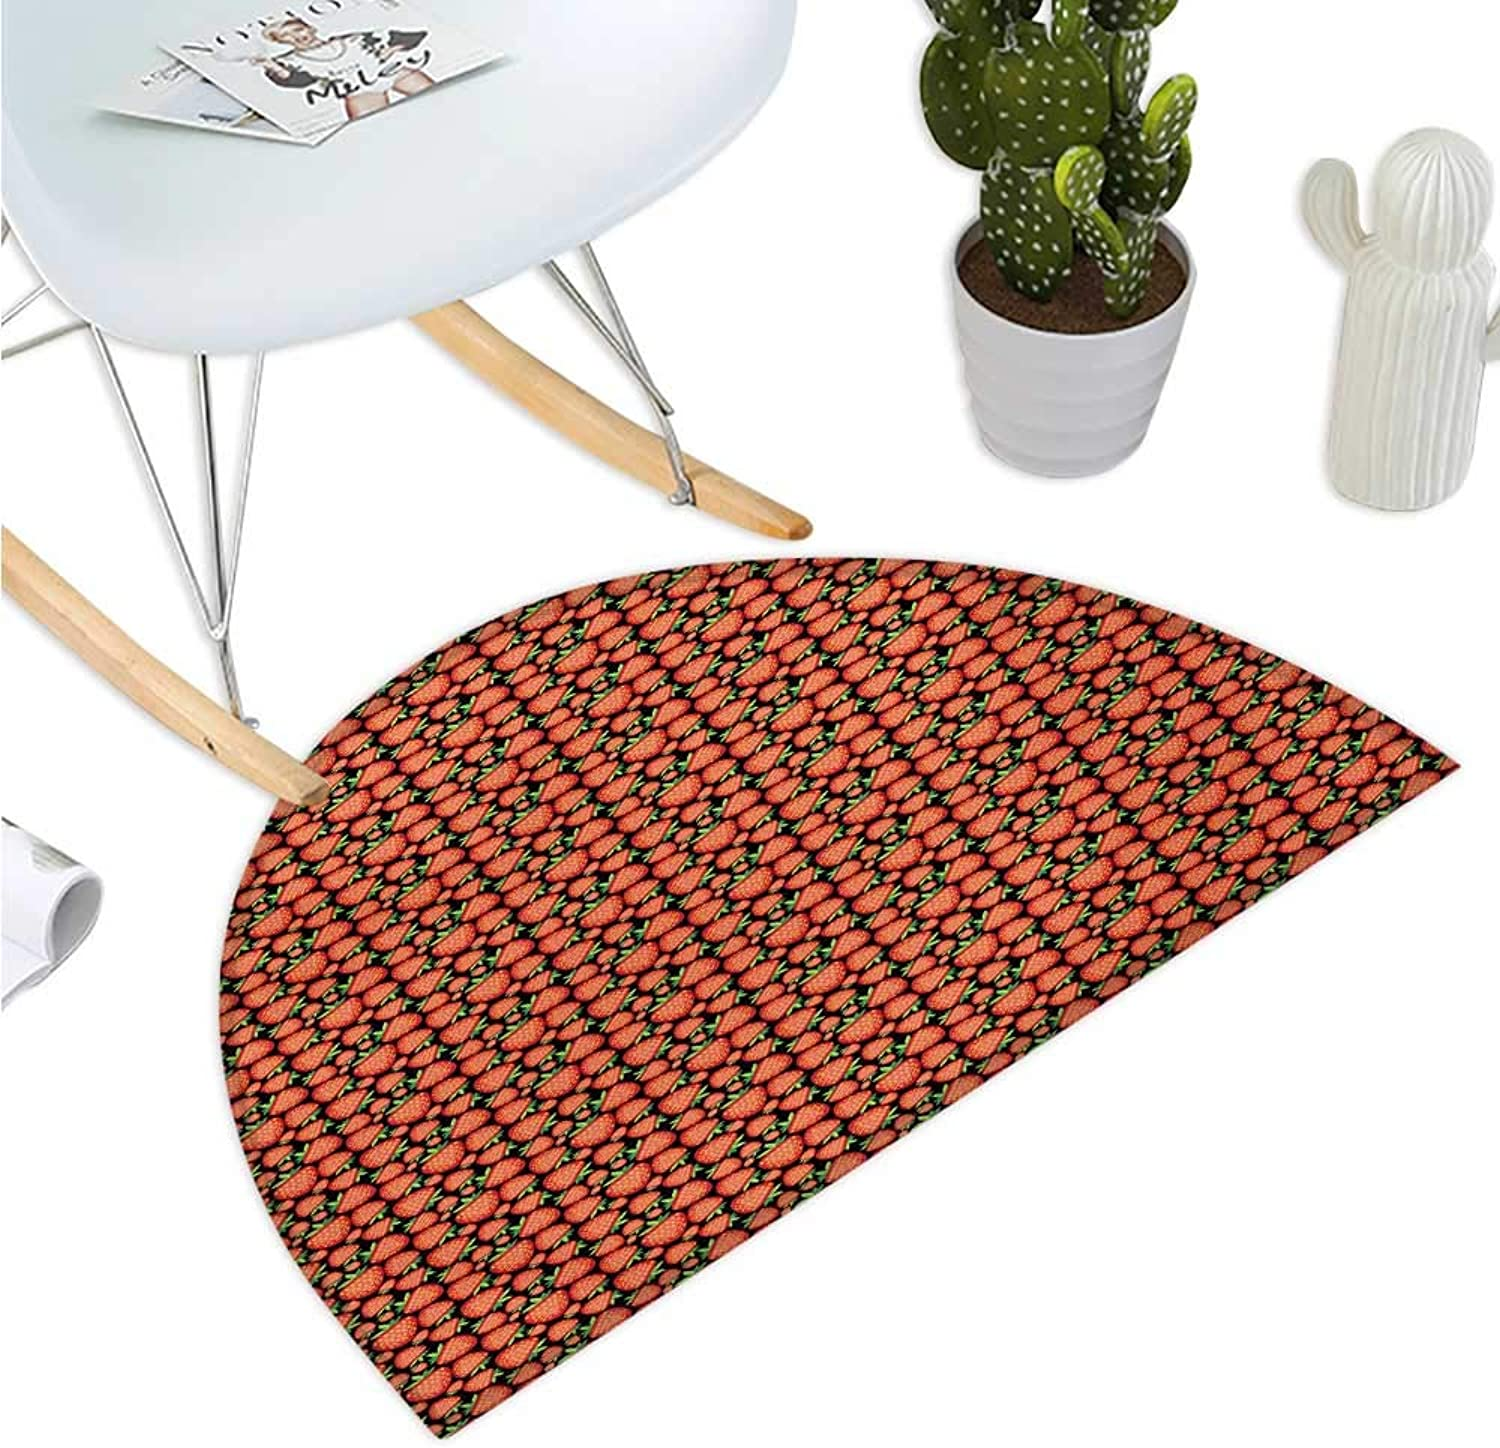 Strawberry Semicircular Cushion Tropical Fruit Pattern with Vivid Ripe Berries Healthy Sweet Summer Fresh Food Entry Door Mat H 39.3  xD 59  Multicolor